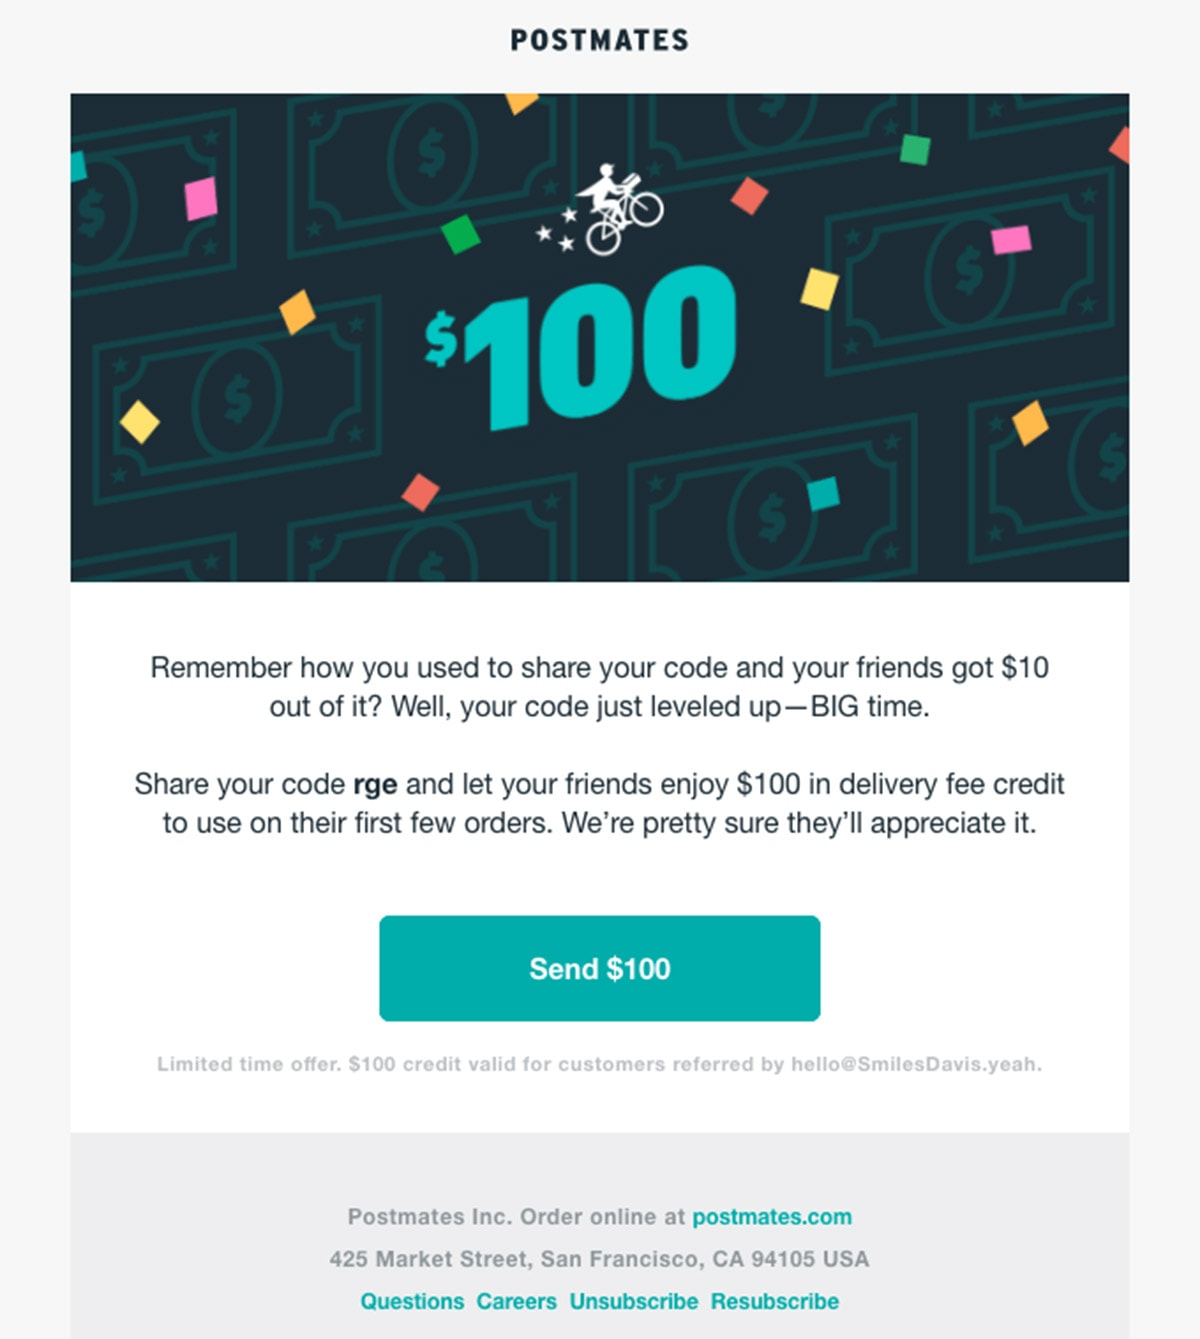 Postmates Newsletter